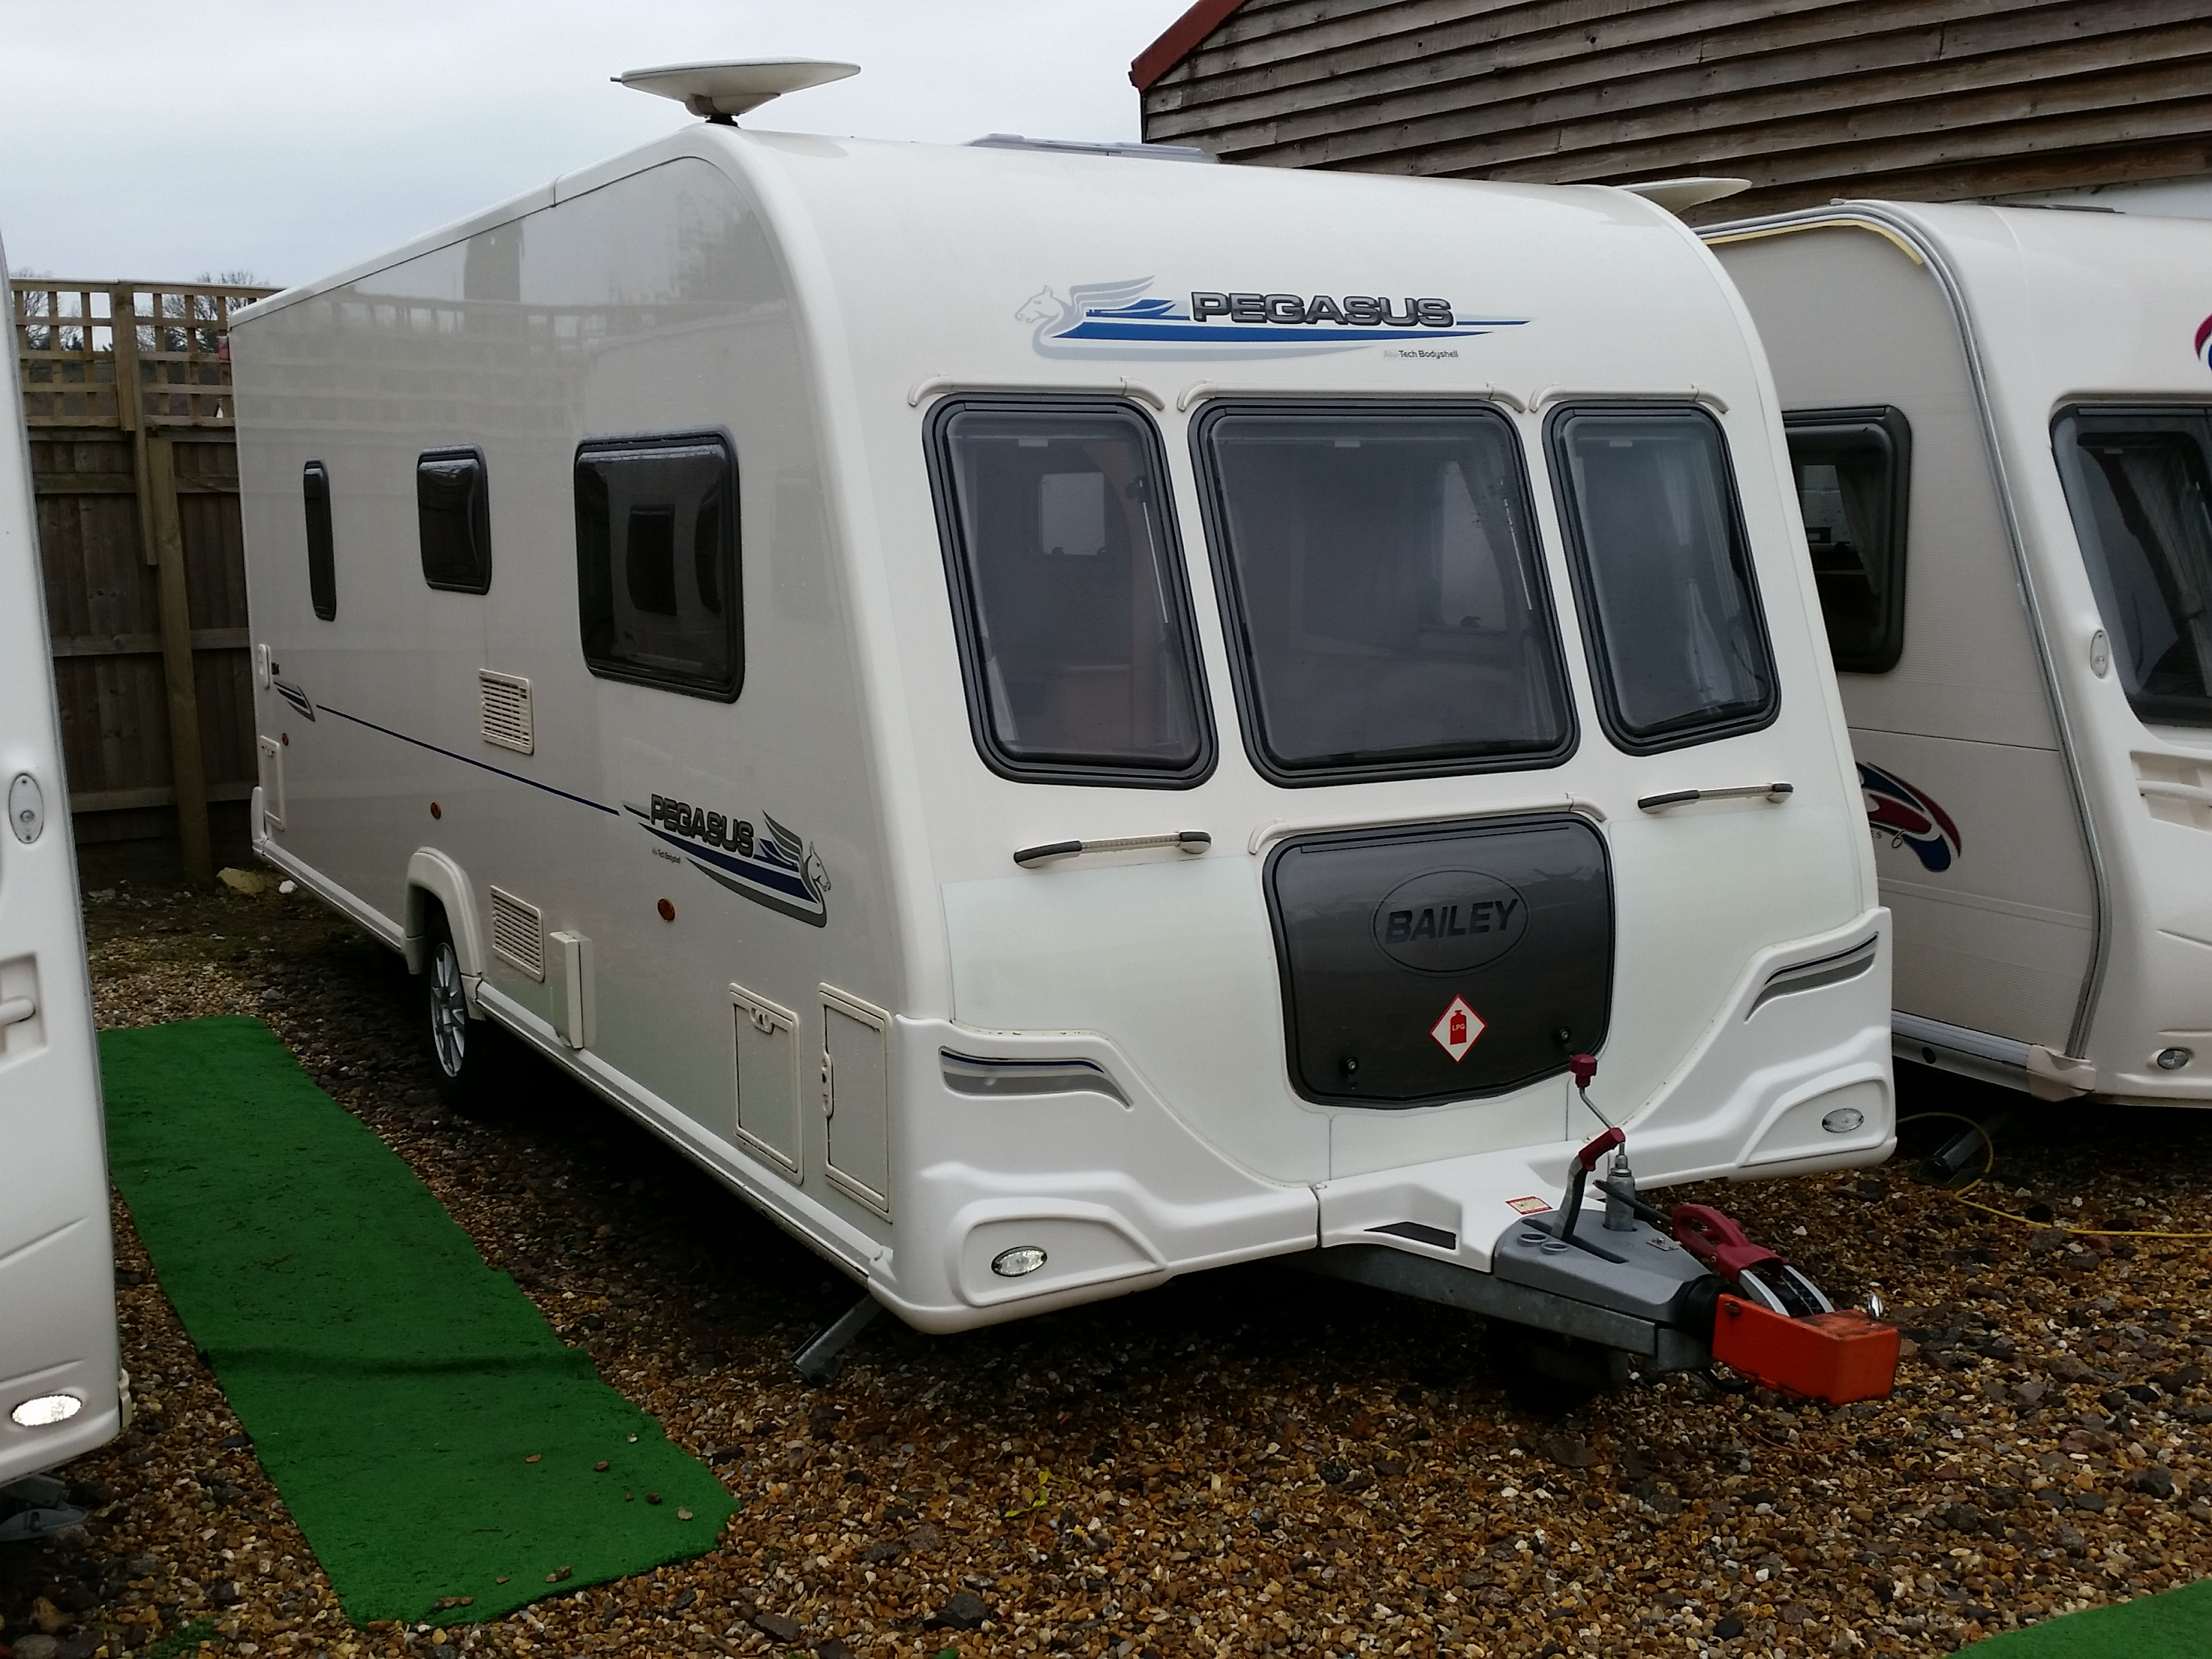 2010 Bailey Pegasus 524 Fixed BED Motor Mover